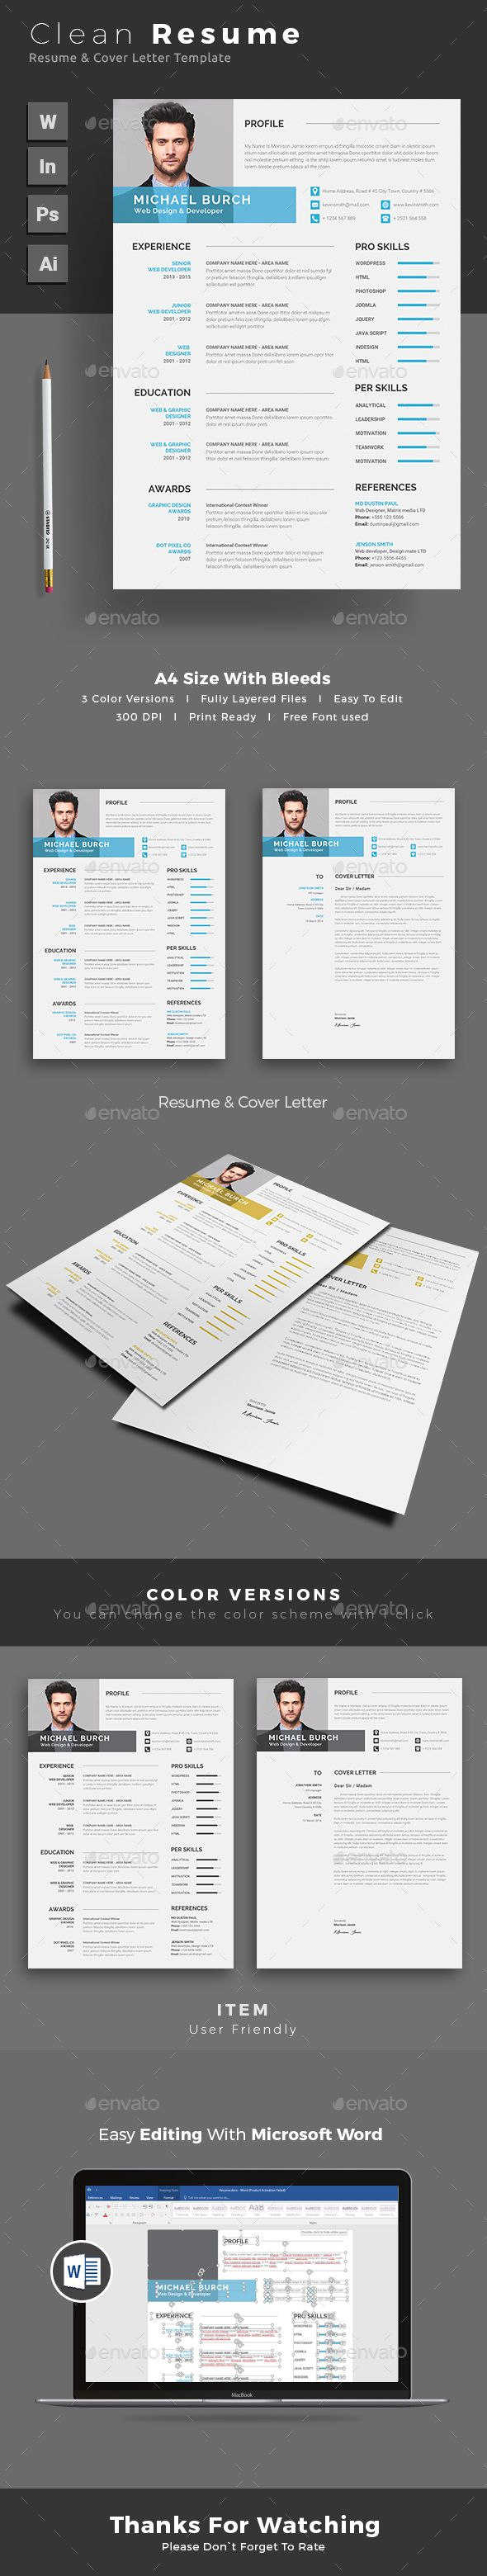 great  clean resume design  for more resume design inspirations click here   pinterest com